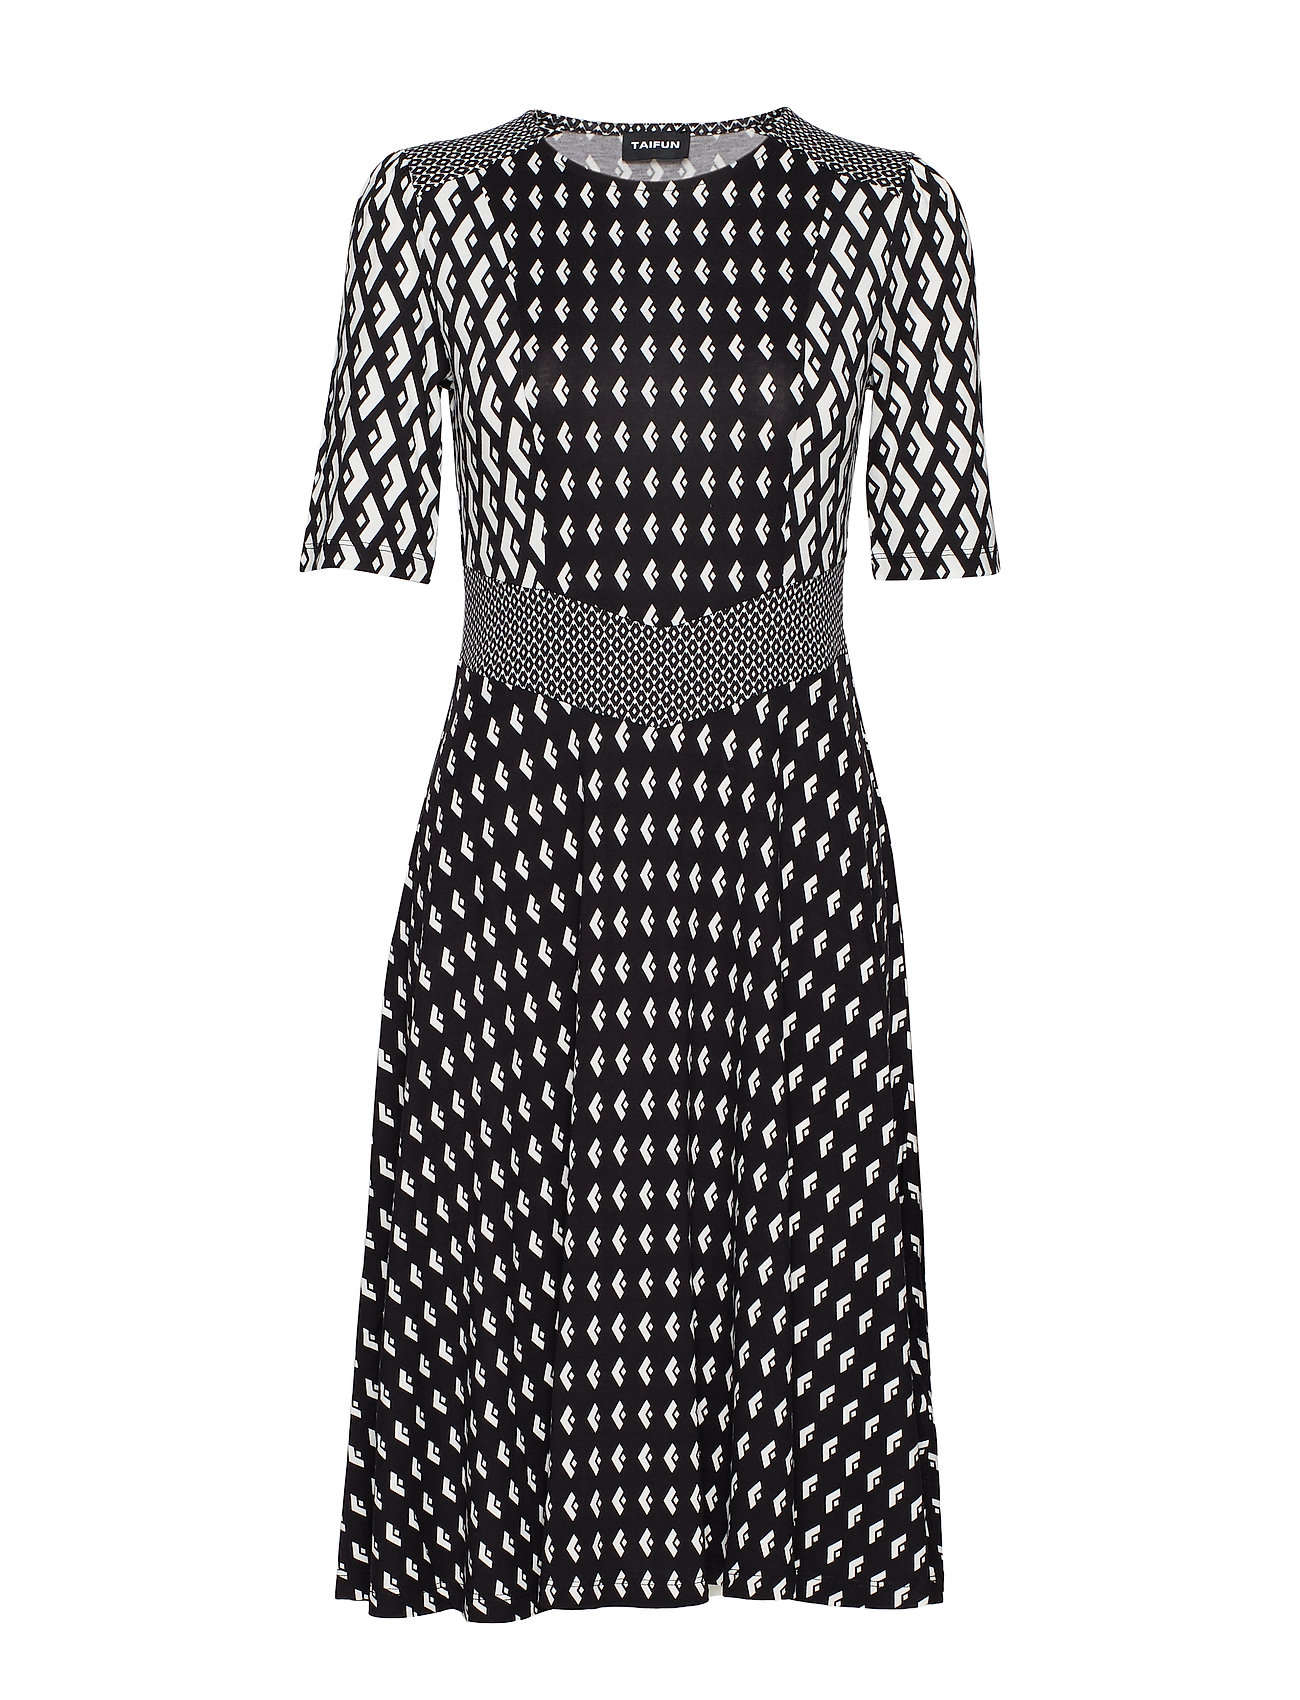 Taifun DRESS KNITTED FABRIC - BLACK PATTERNED